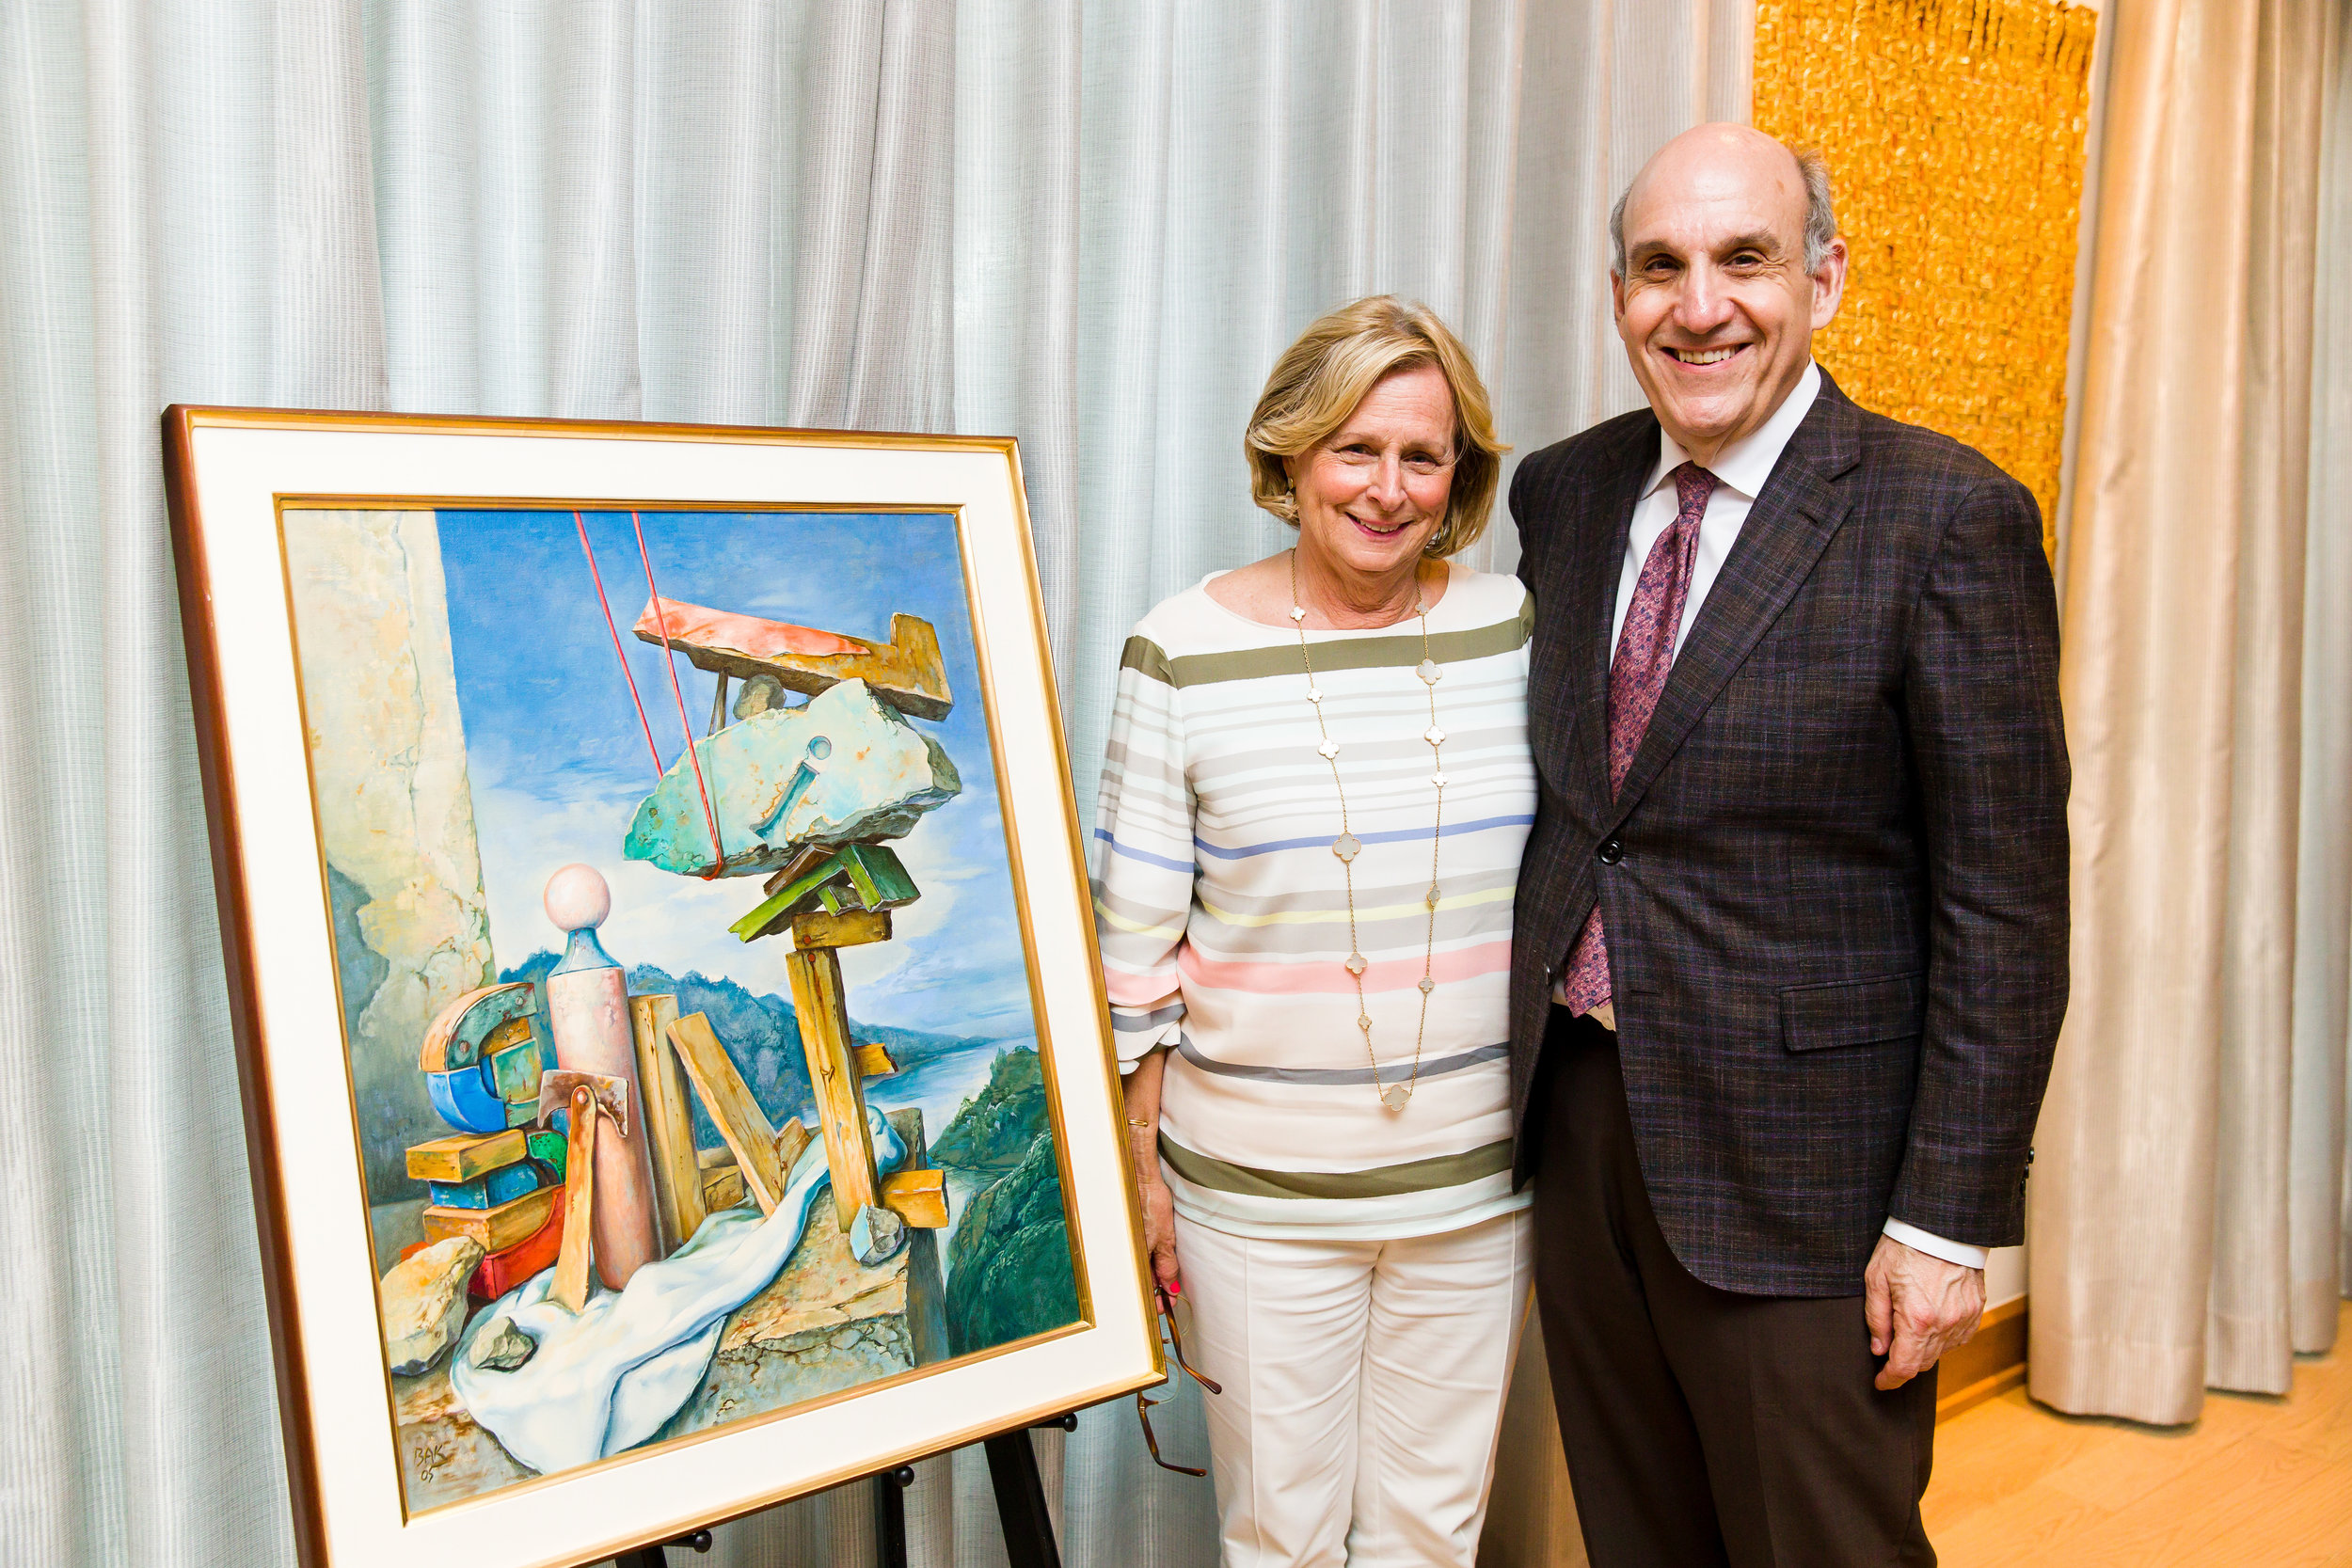 Joy and HMH Board Chair Benjamin Warren with Bak painting at the Private Reception with Bak for HMH Art Circle Members, 17 June 2019; Photographed by Daniel Ortiz